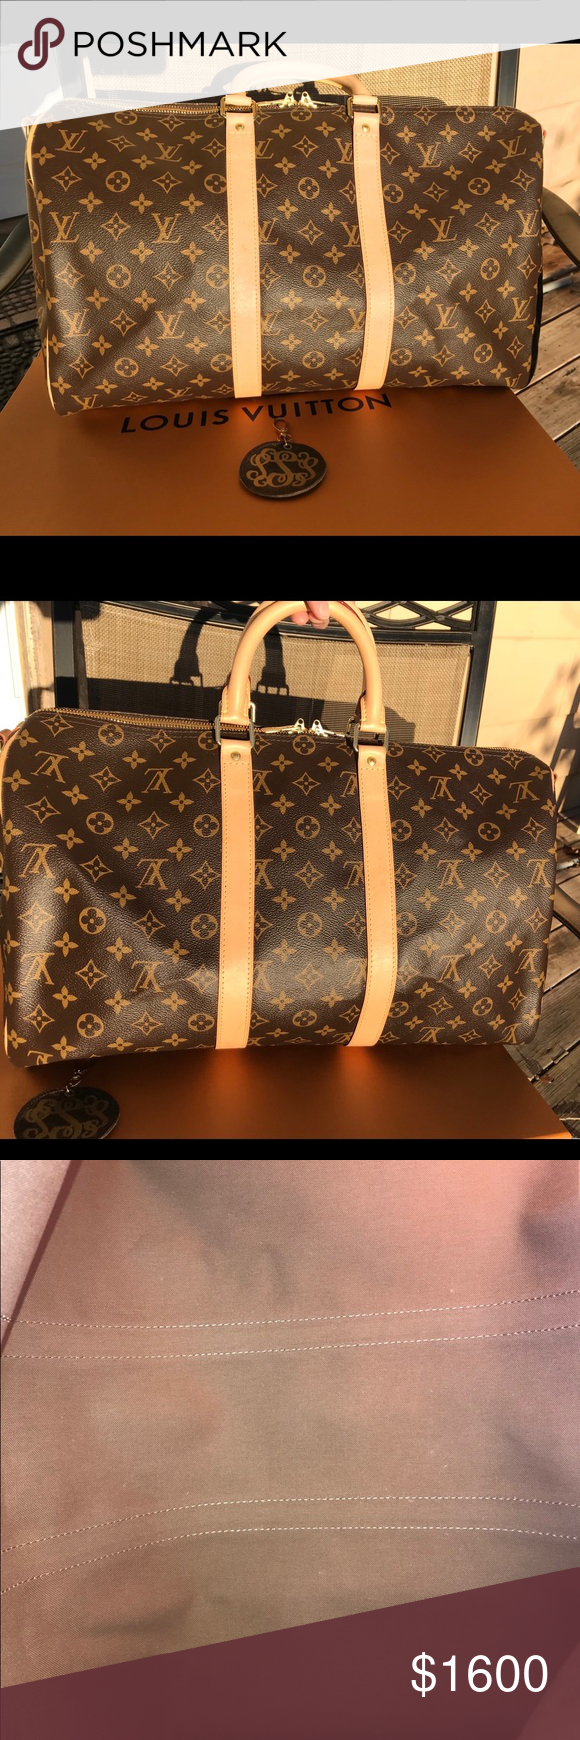 27cc897049c Authentic Louis Vuitton Keepall Bandouliere 45 Excellent condition - new  handles (from LV)